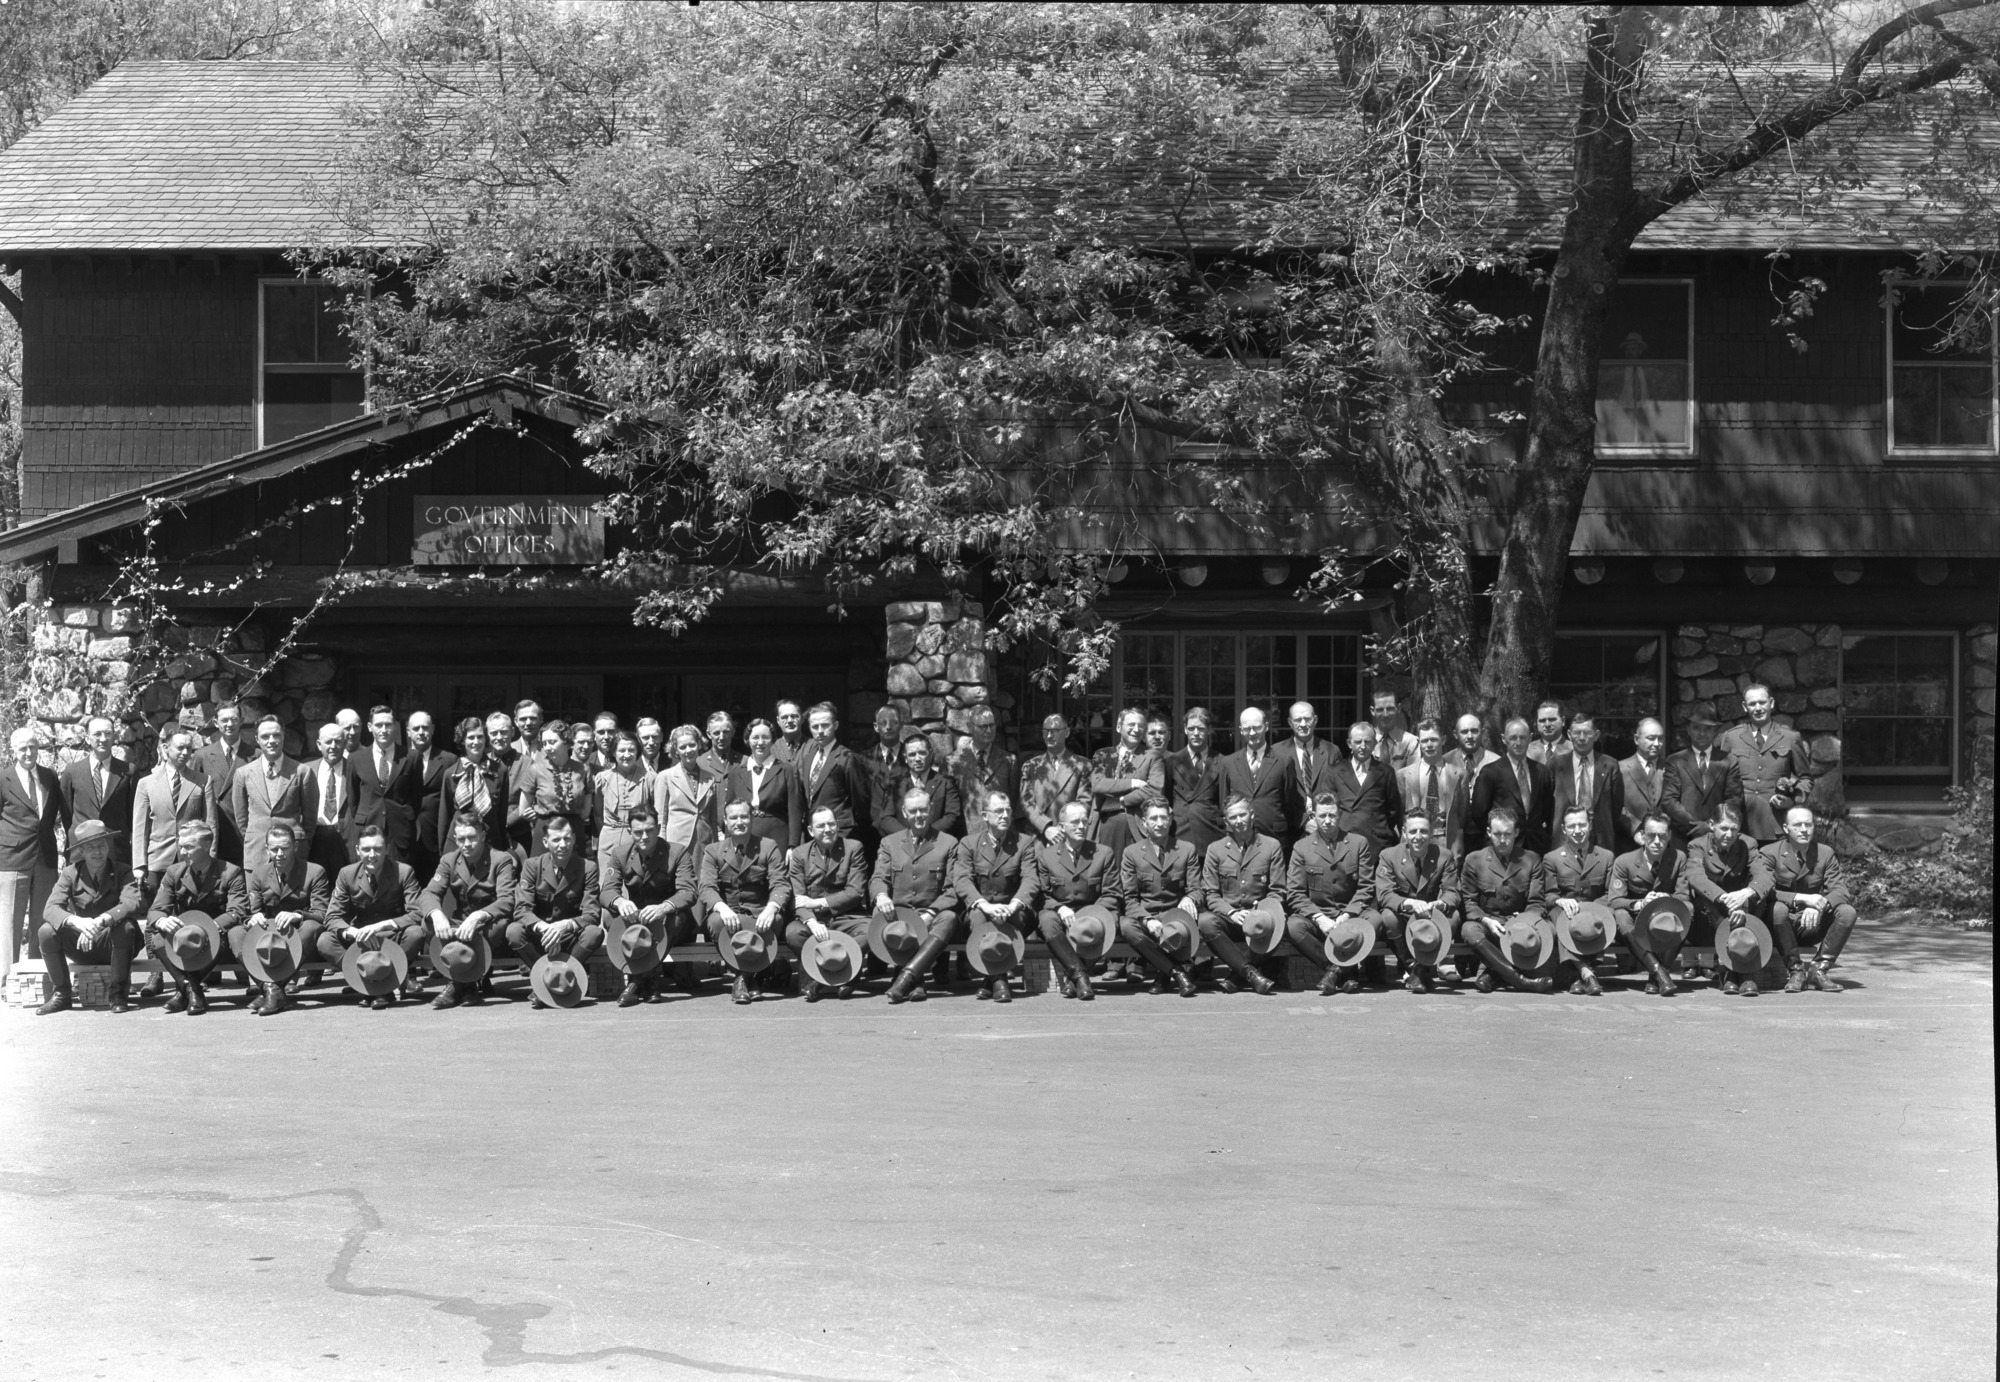 Group of permanent NPS personnel. FRONT ROW: L-R Ed Beatty, Assist. Naturalist; Frank Givens, Ranger; Duane Jacobs, Ranger; Harry During, Ranger; Lon Garrison, Ranger; John Bingaman, Ranger; Jerry Mernin, Ranger; John Wosky, Asst. Supt.; L.C. Merriam, Supt.; F.S. Townsley, Chief Ranger; John Wegner, Asst. Chief; Gus Eastman, Ranger; Carl Danner, Ranger; Vernon Lowery, Ranger; Cliff Anderson, Ranger; Homer Hoyt, Ranger; Otto Brown, Ranger; Stan Joseph, Asst. to Supt.; Jim Stakel, Ranger; Art Holmes, Ranger; Ralph H. Anderson, info. clerk & photographer; STANDING: Frank Ewing, Employment Mgr.; Russell Sprinkel, Chief Clerk; E.M. Hilton, Park Engineer; Dwight Humphries, Clerk Steno.; Jim Harrison, Sec. to Supt.; Dan Cookson, electrician; Lee Rust, road maint.; Art Guinn, Accounting, personnel (?); Harvey Ashworth, electrician; Hazel Adams, steno; Art Moen, warehouse; Henry Listina, equip. whse.; Eliz. Godgrey, sec. Museum; R. Hodges; Walt Gann, electrician; Essie Kimball, file clerk; Joe Jenkins, chief electrici